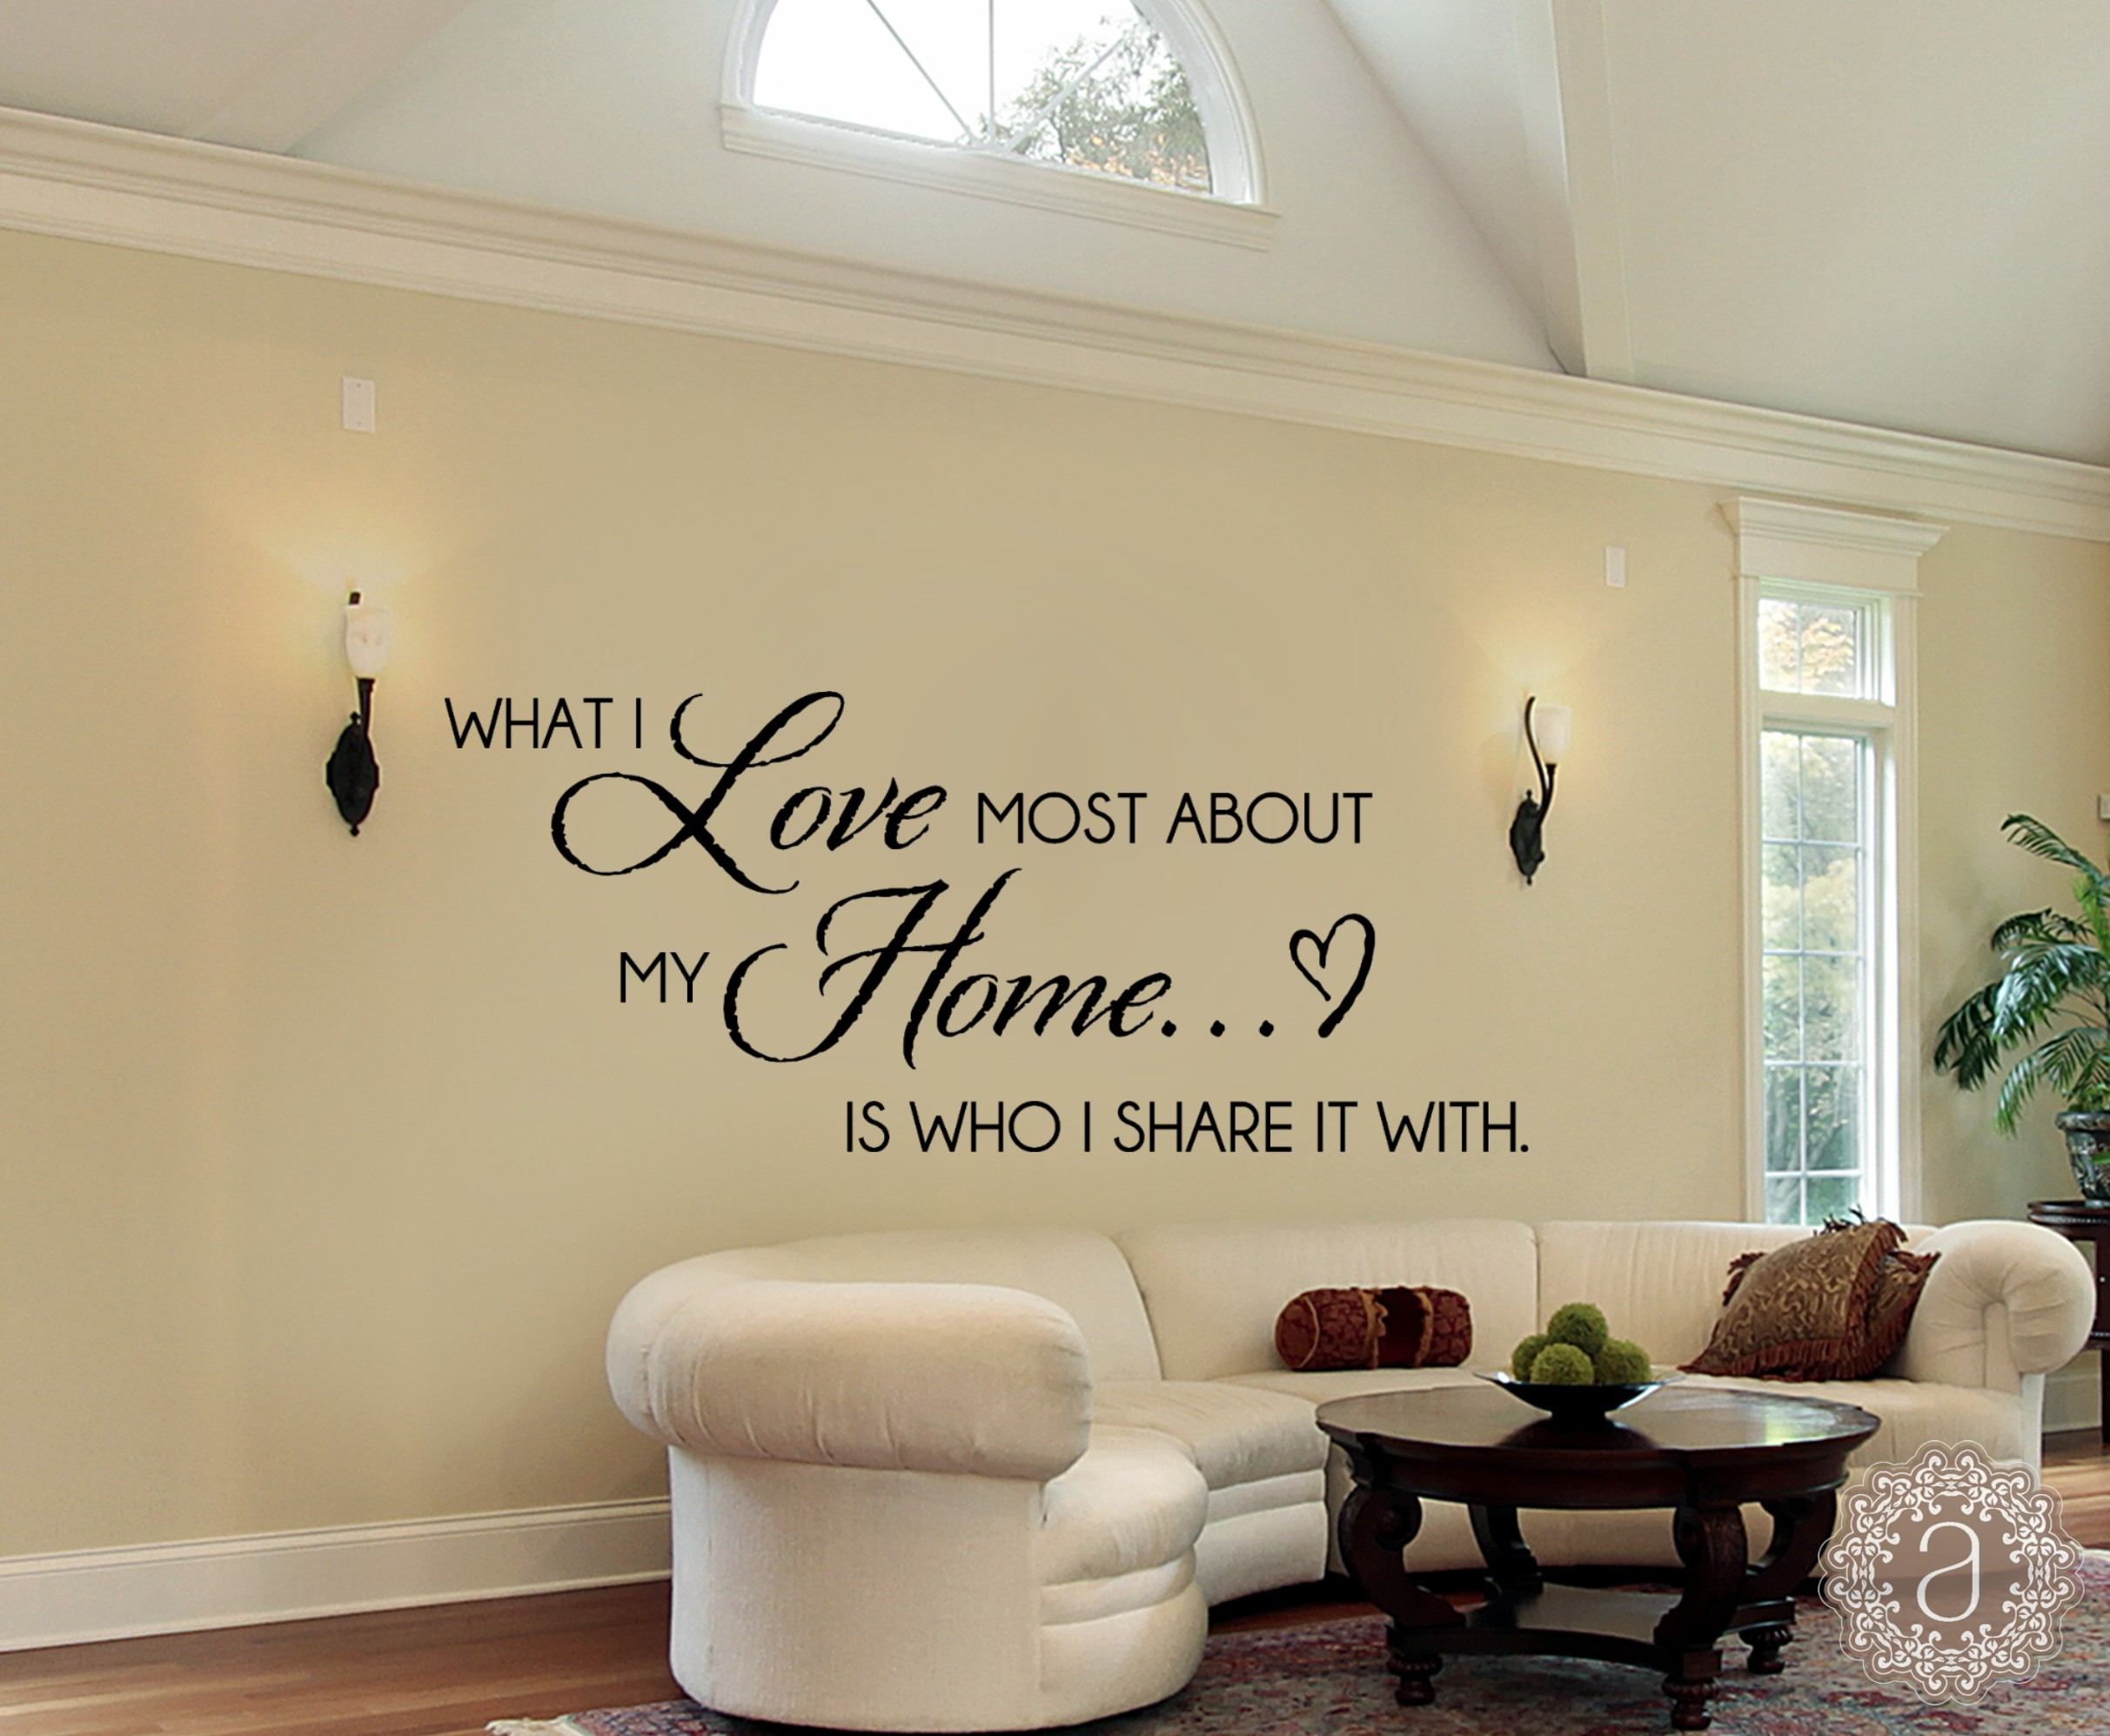 Designs Wall Decals For Home fice Plus Wall Stickers For Home